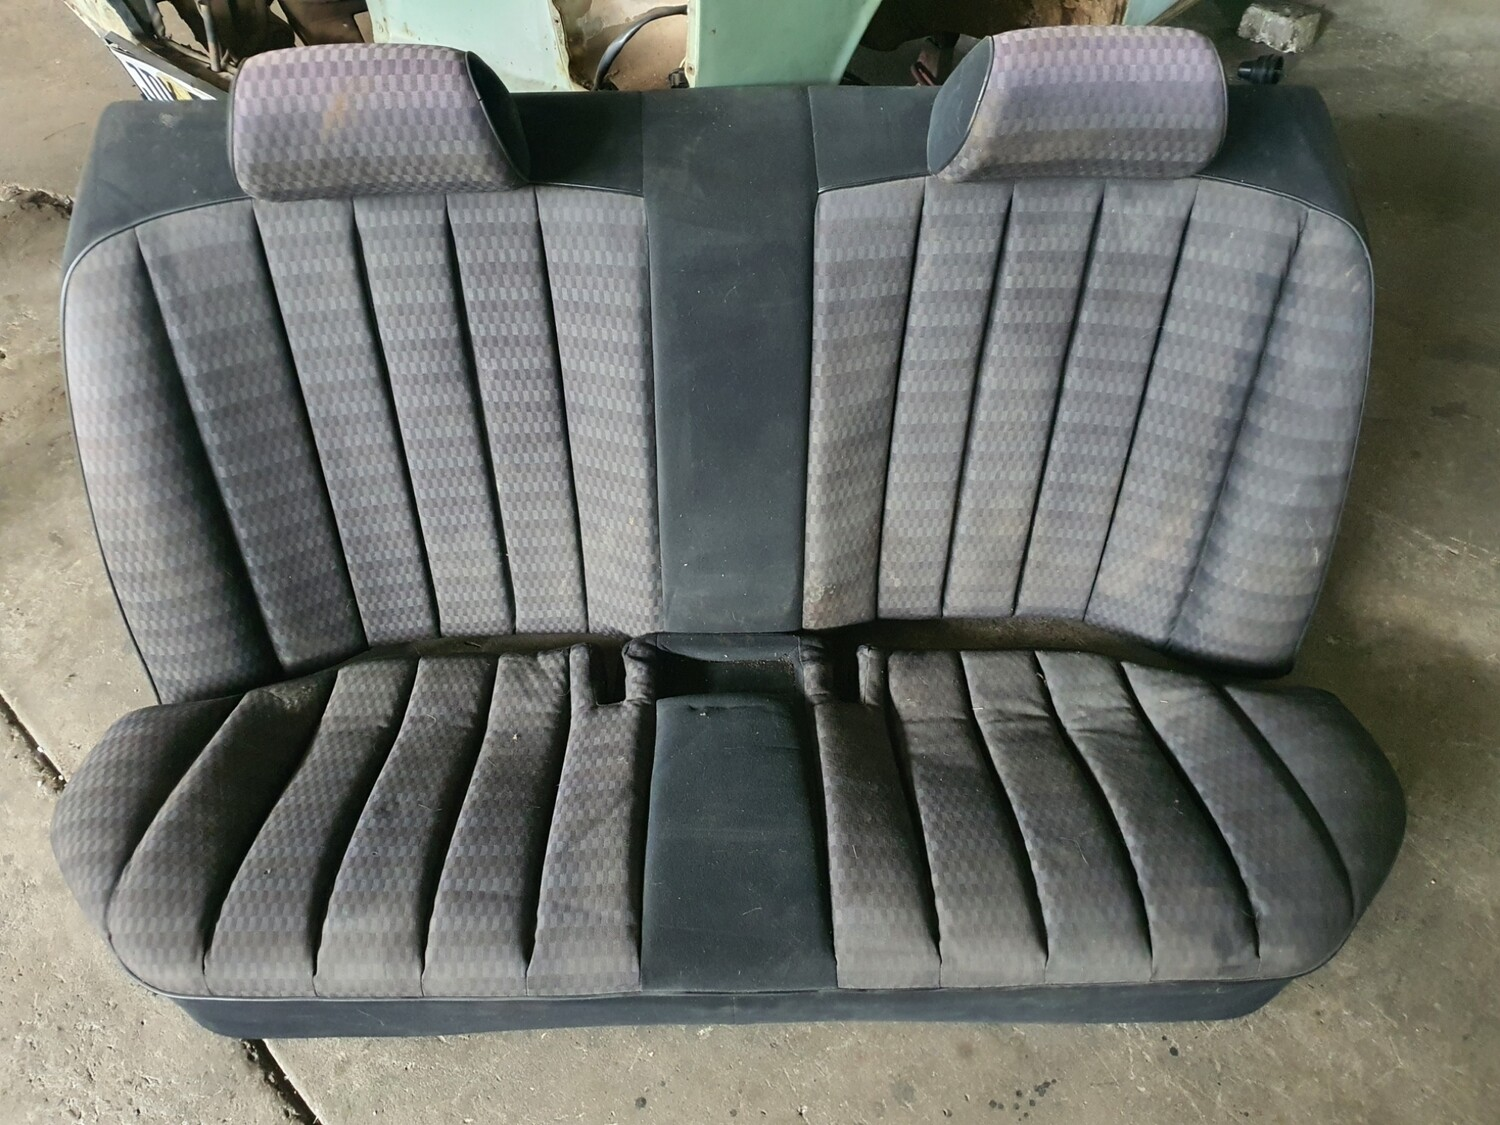 Mercedes-Benz set of seats (W201)